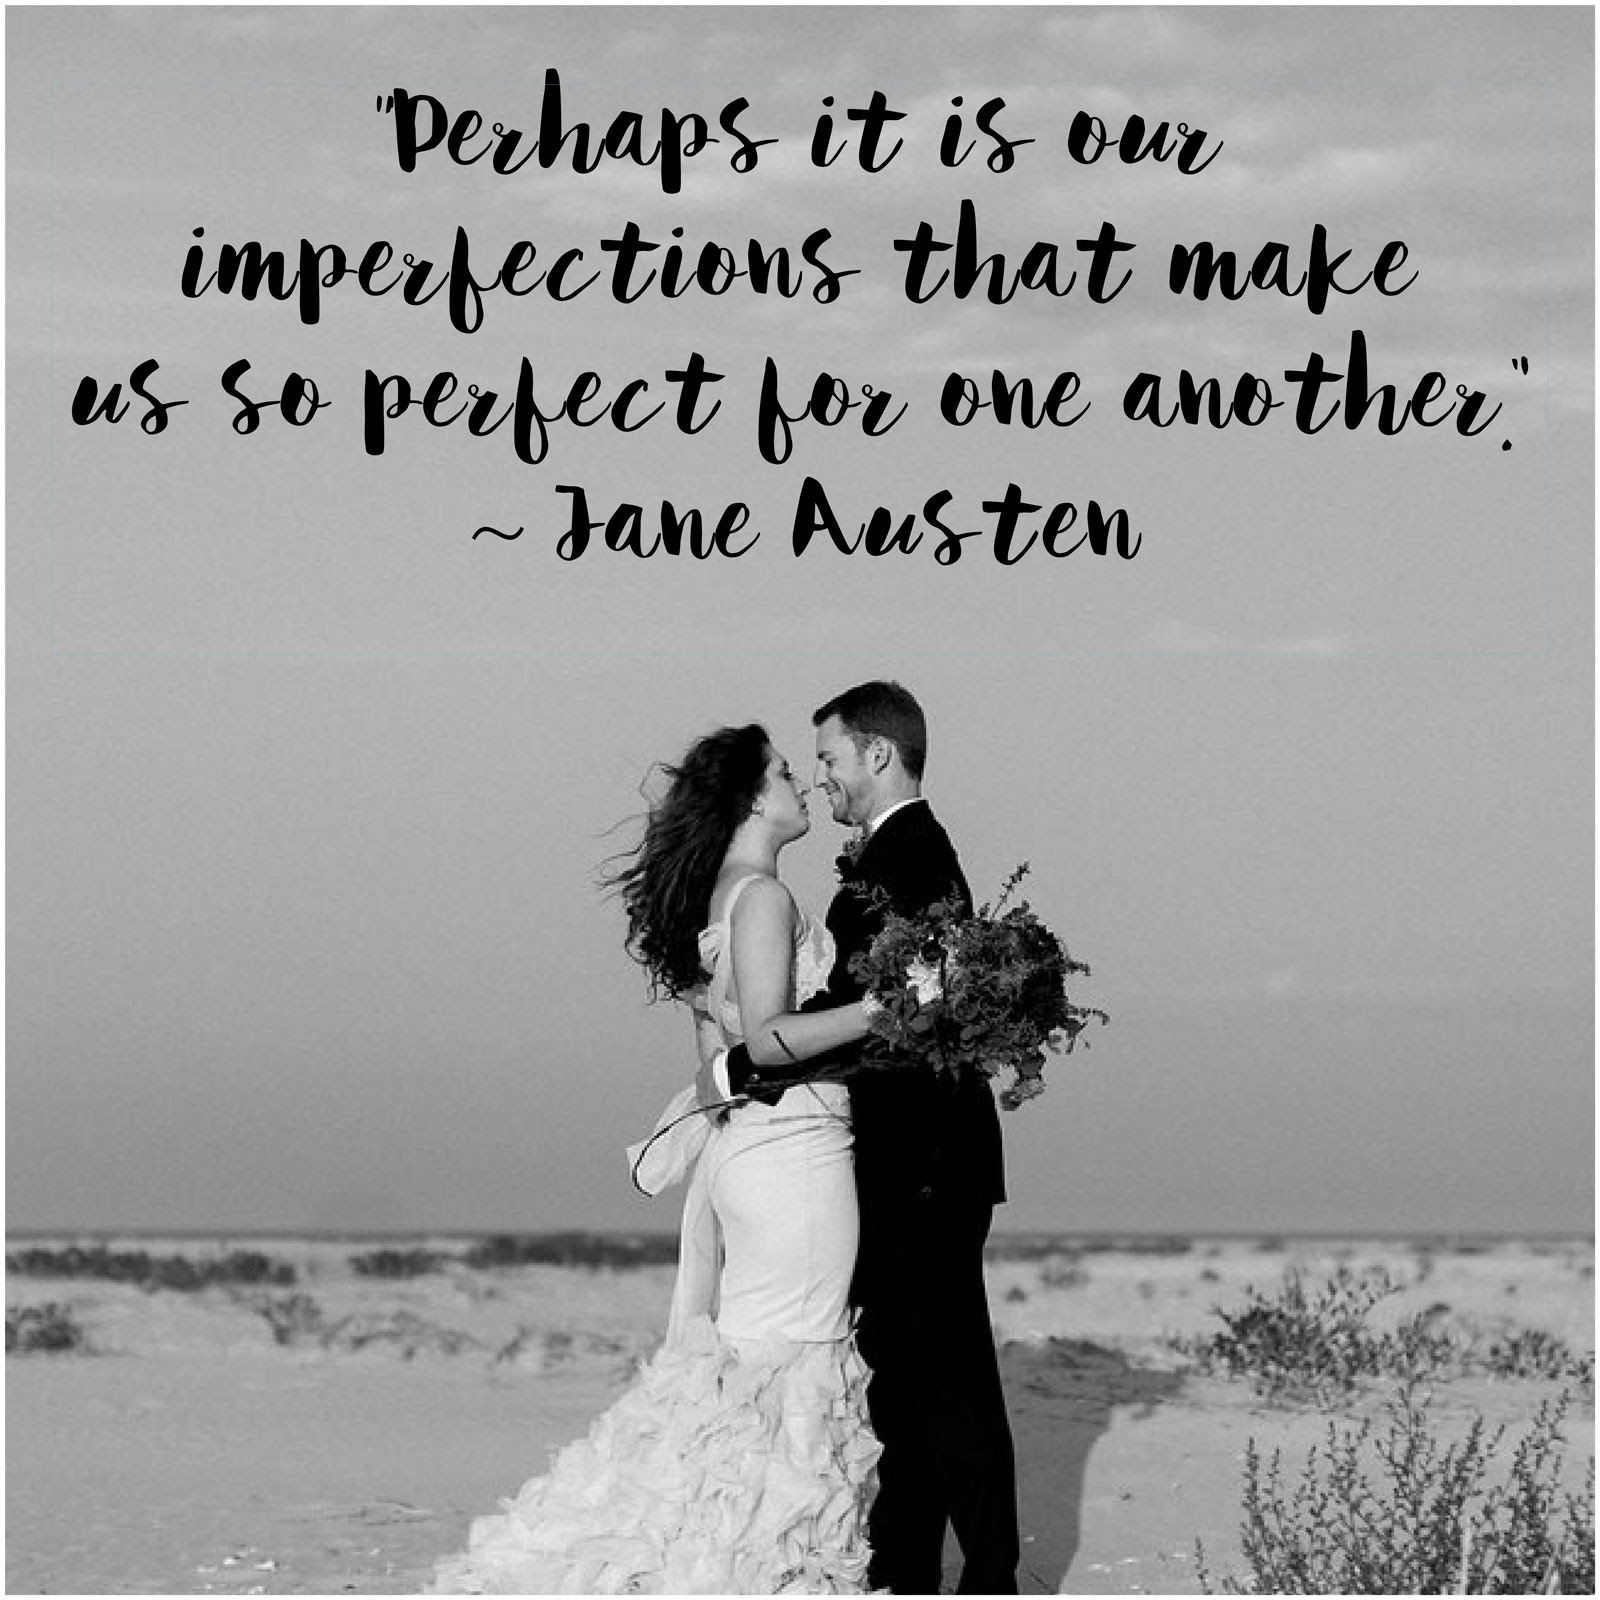 16 Love Marriage Quotes That Get It Right